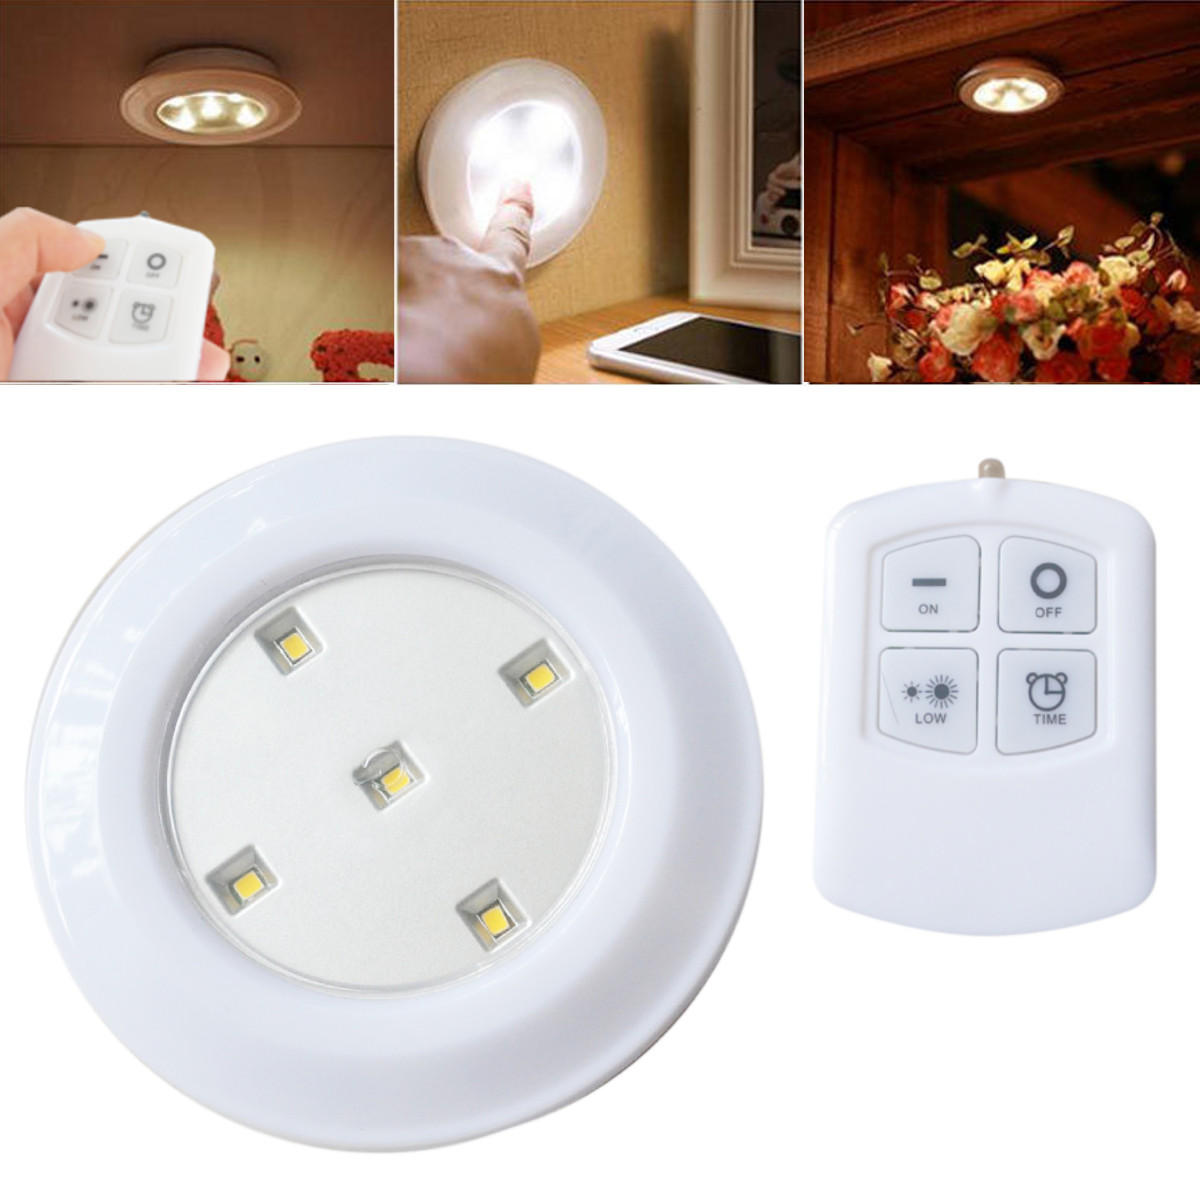 Remote Controlled Night Light Wireless Remote Control Bright Led Night Light Battery